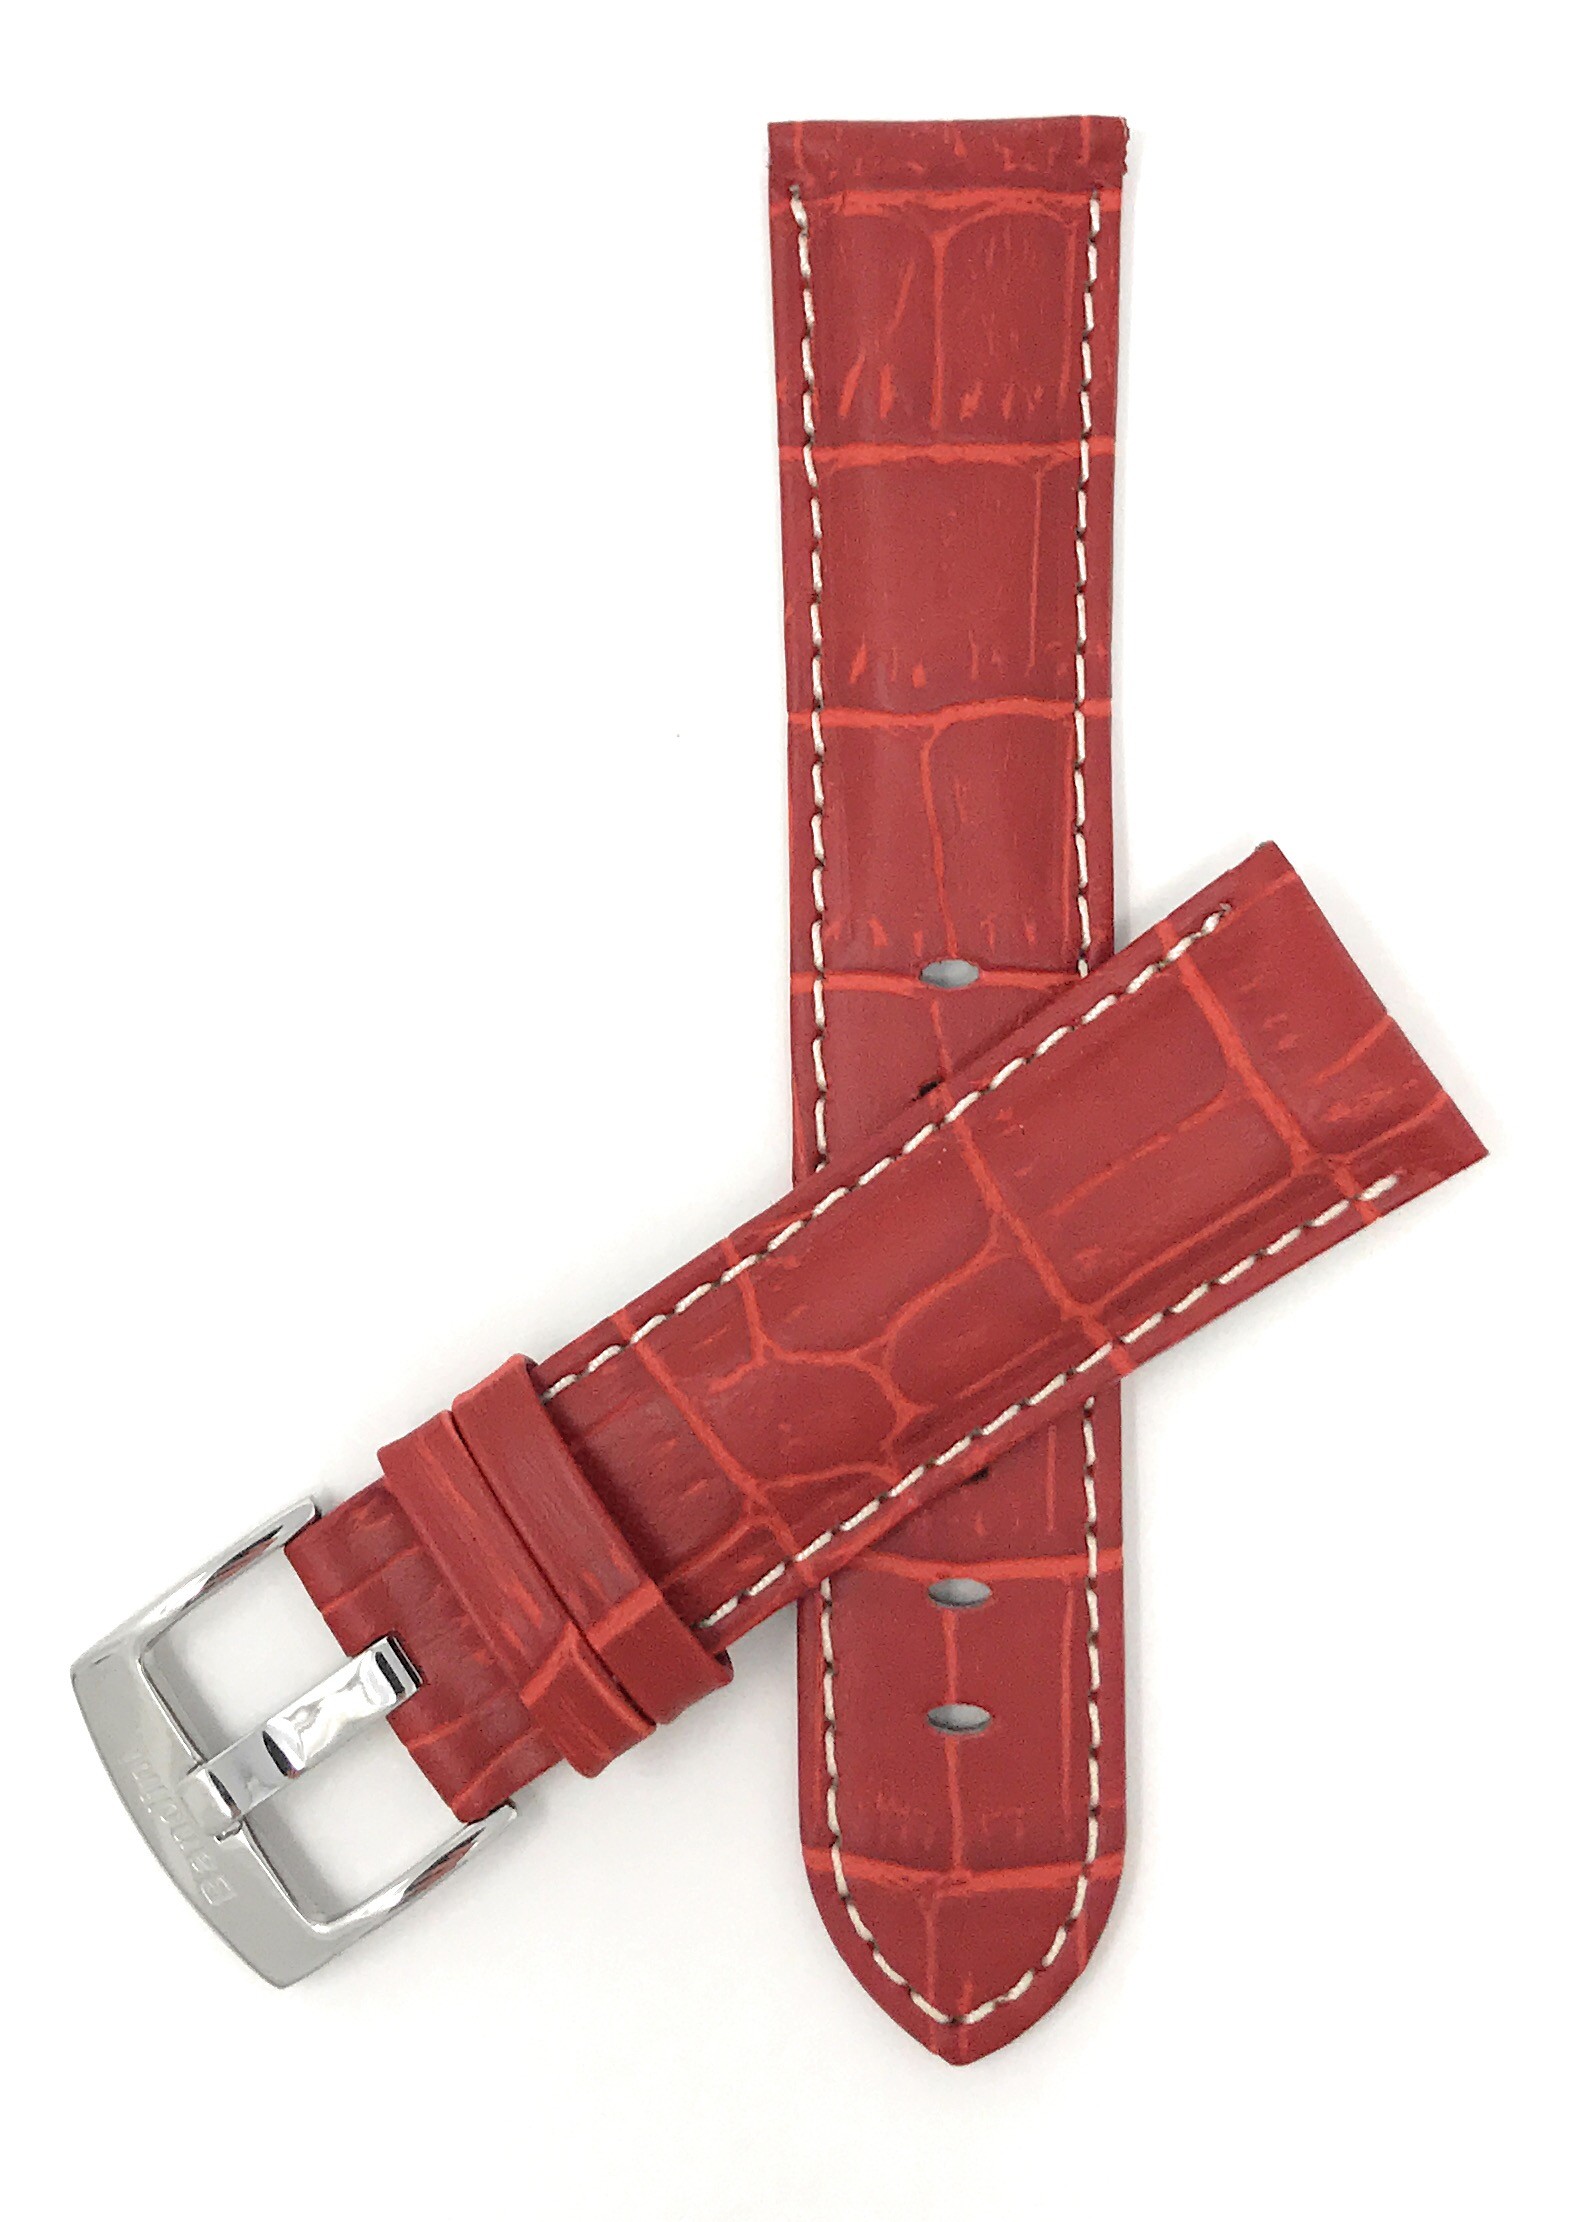 Bandini-Mens-Watch-Band-Alligator-Style-Leather-Strap-18mm-26mm-15-Colors thumbnail 71